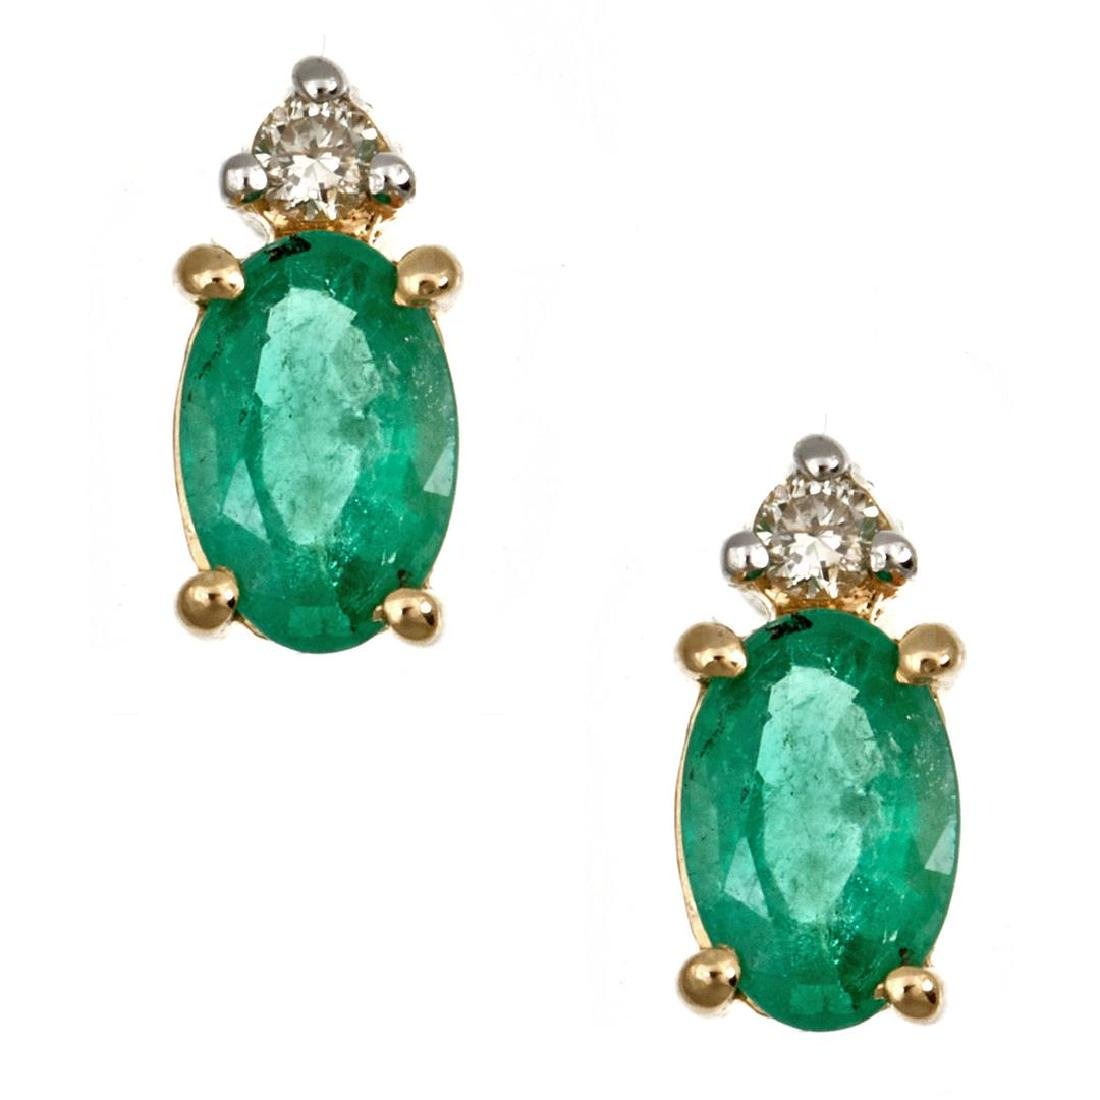 0.83 ctw Emerald and Diamond Earrings - 14KT Yellow and